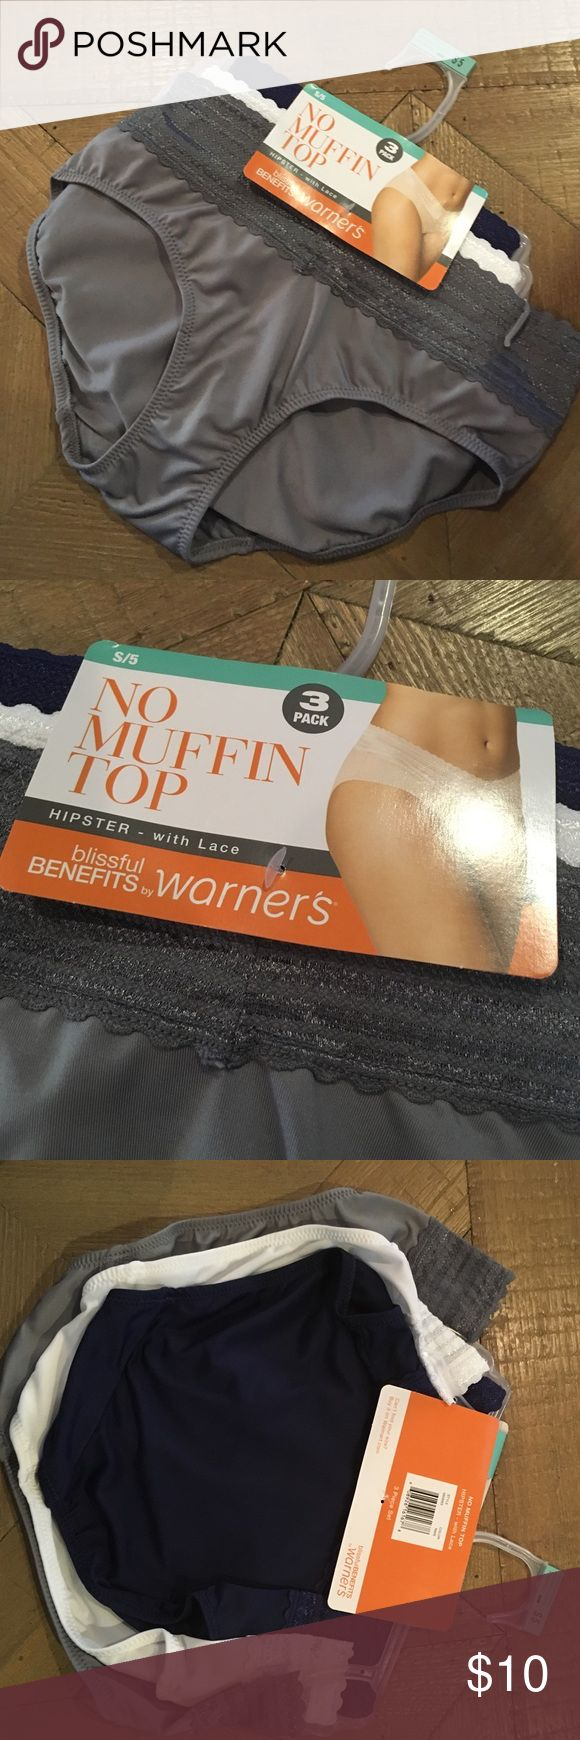 NEW no muffin top warners hipster underwear S 5 New with tags, size 5. Warners brand, no muffin top hipster style. Size S/5 three pairs warners Intimates & Sleepwear Panties